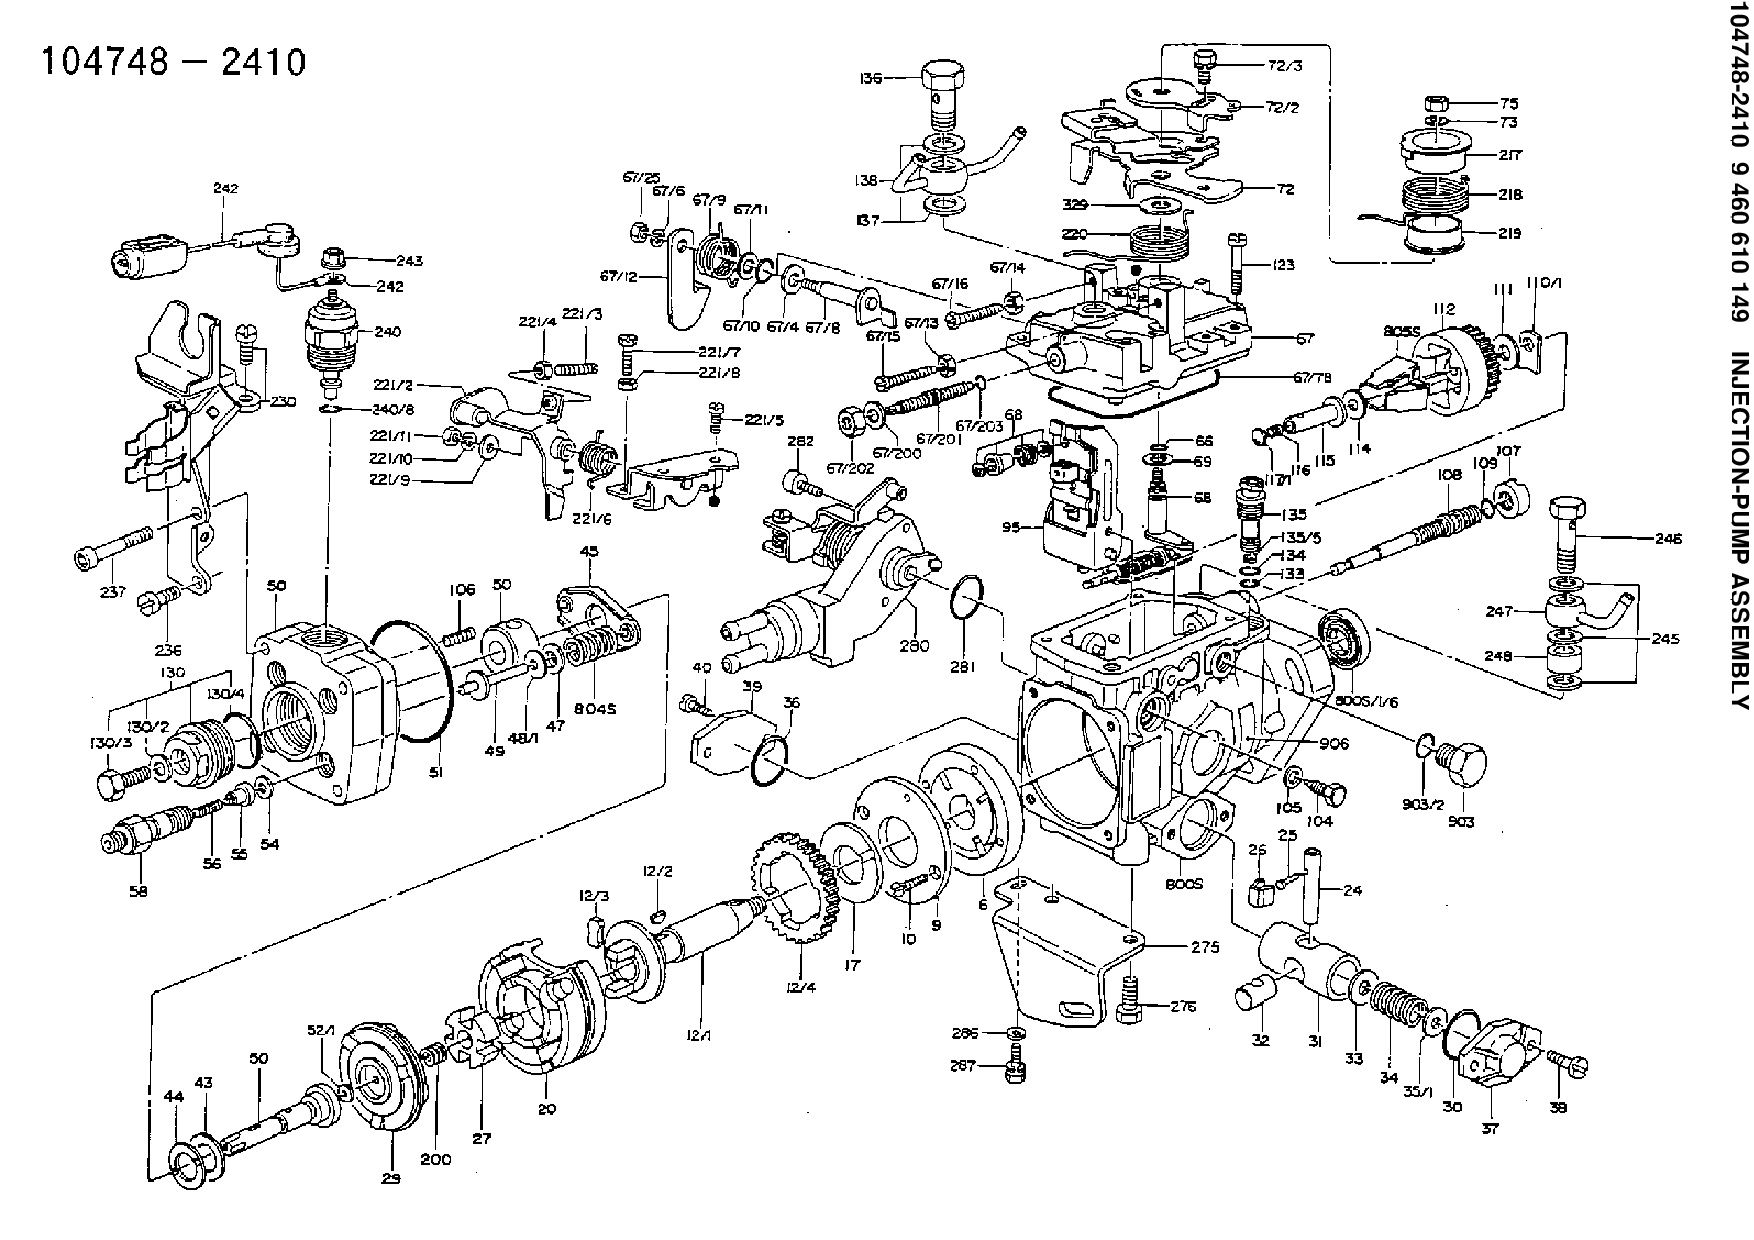 94 98 Dodge 5 9l Cummins Bd Replacement P7100 Injection Pump further vp44 in addition V Model additionally Sujet604552 together with 9460610149. on vp44 injection pump